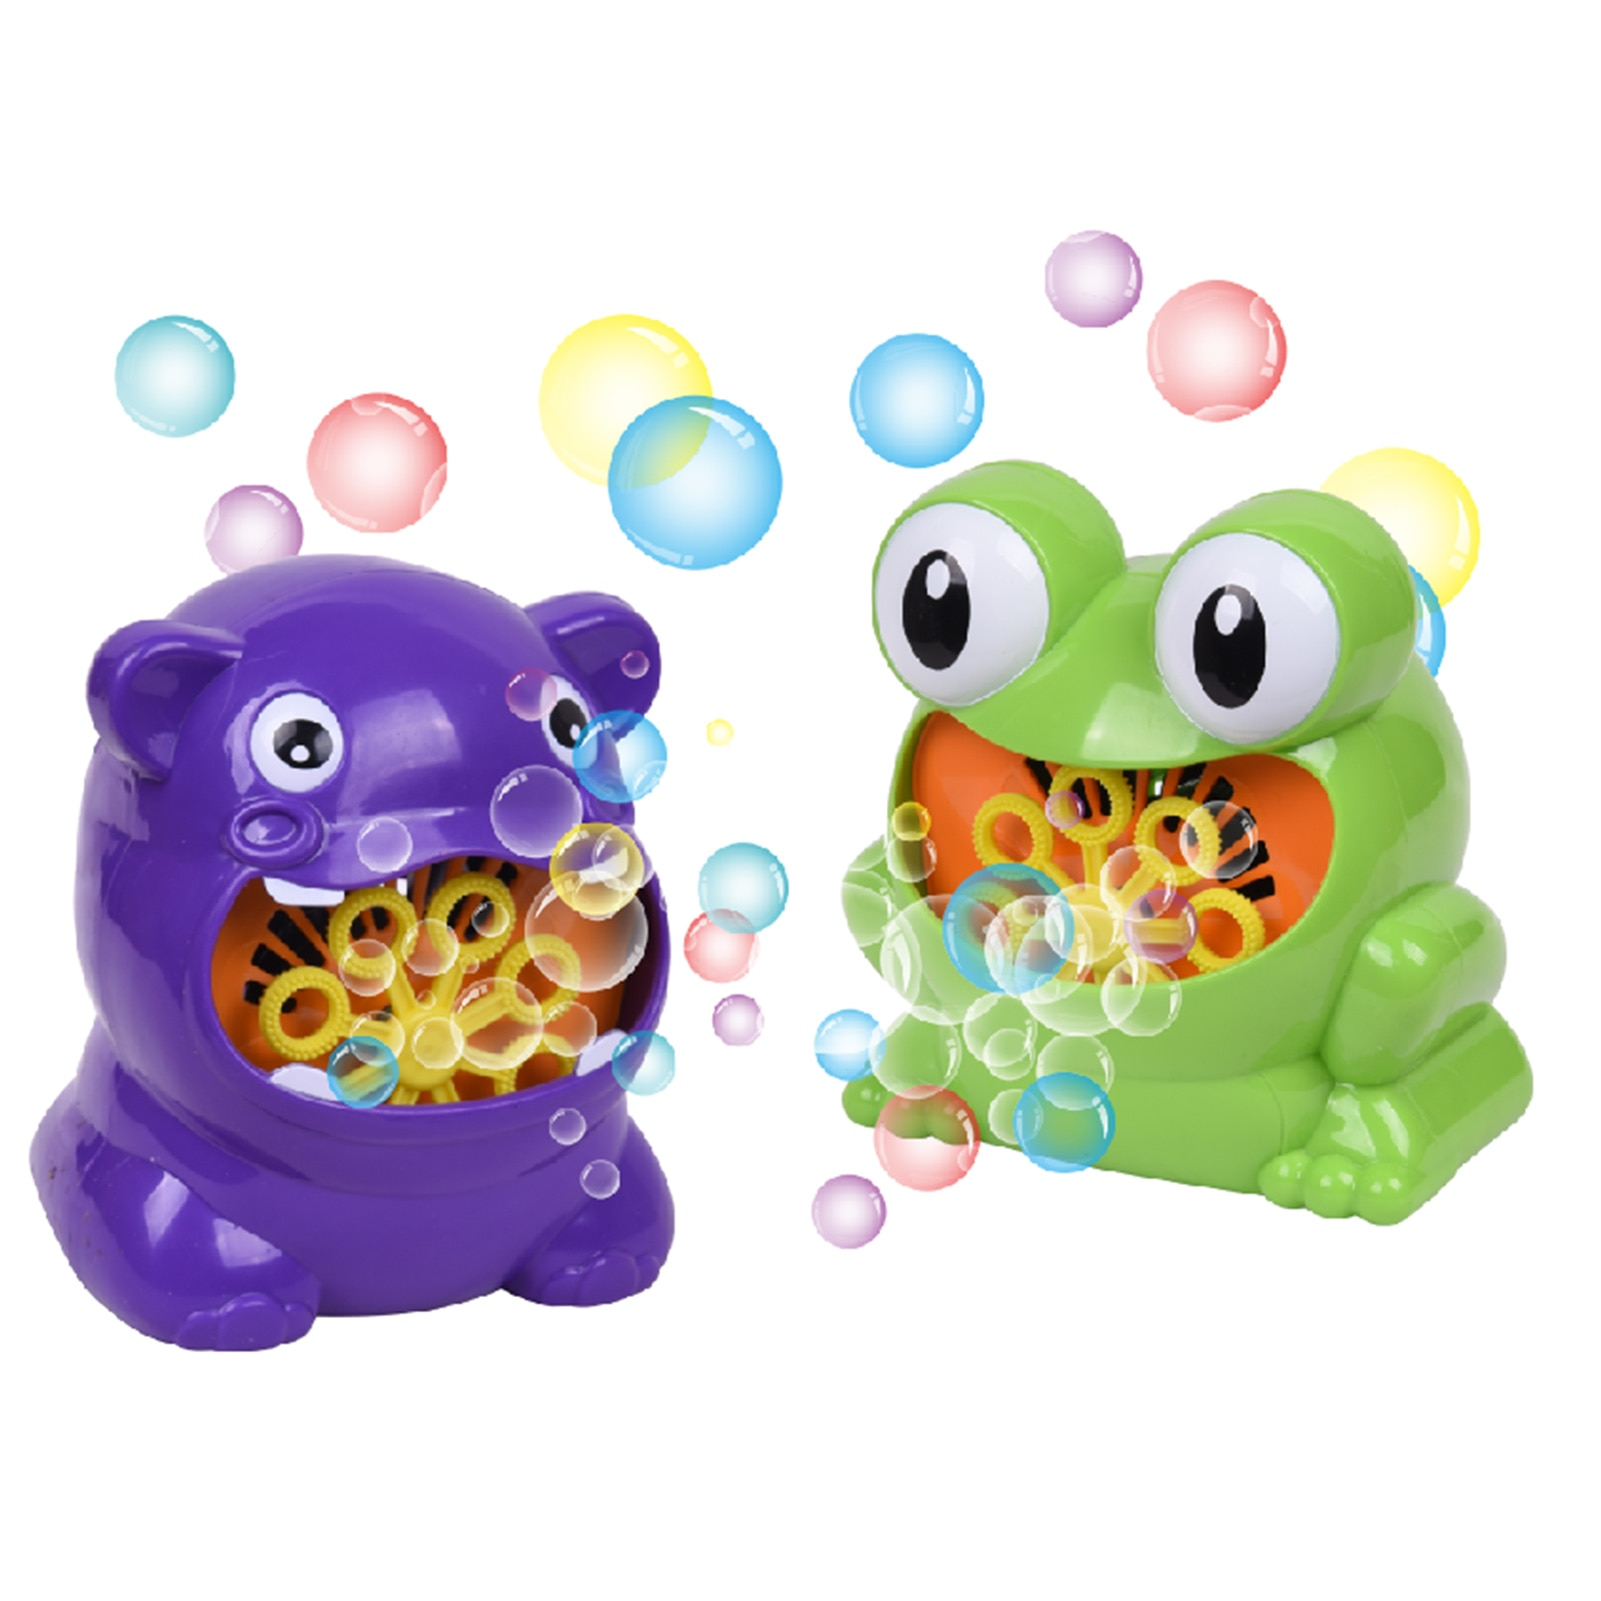 Children's Electric Bubble Blowing Toy Funny Cartoon Frog Hippo Automatic Bubble Machine Blowing Bubble Bath Toy Baby Gift electric blowing bubble stick toy automatic magic stick bubble machine children blowing bubble outdoor toy